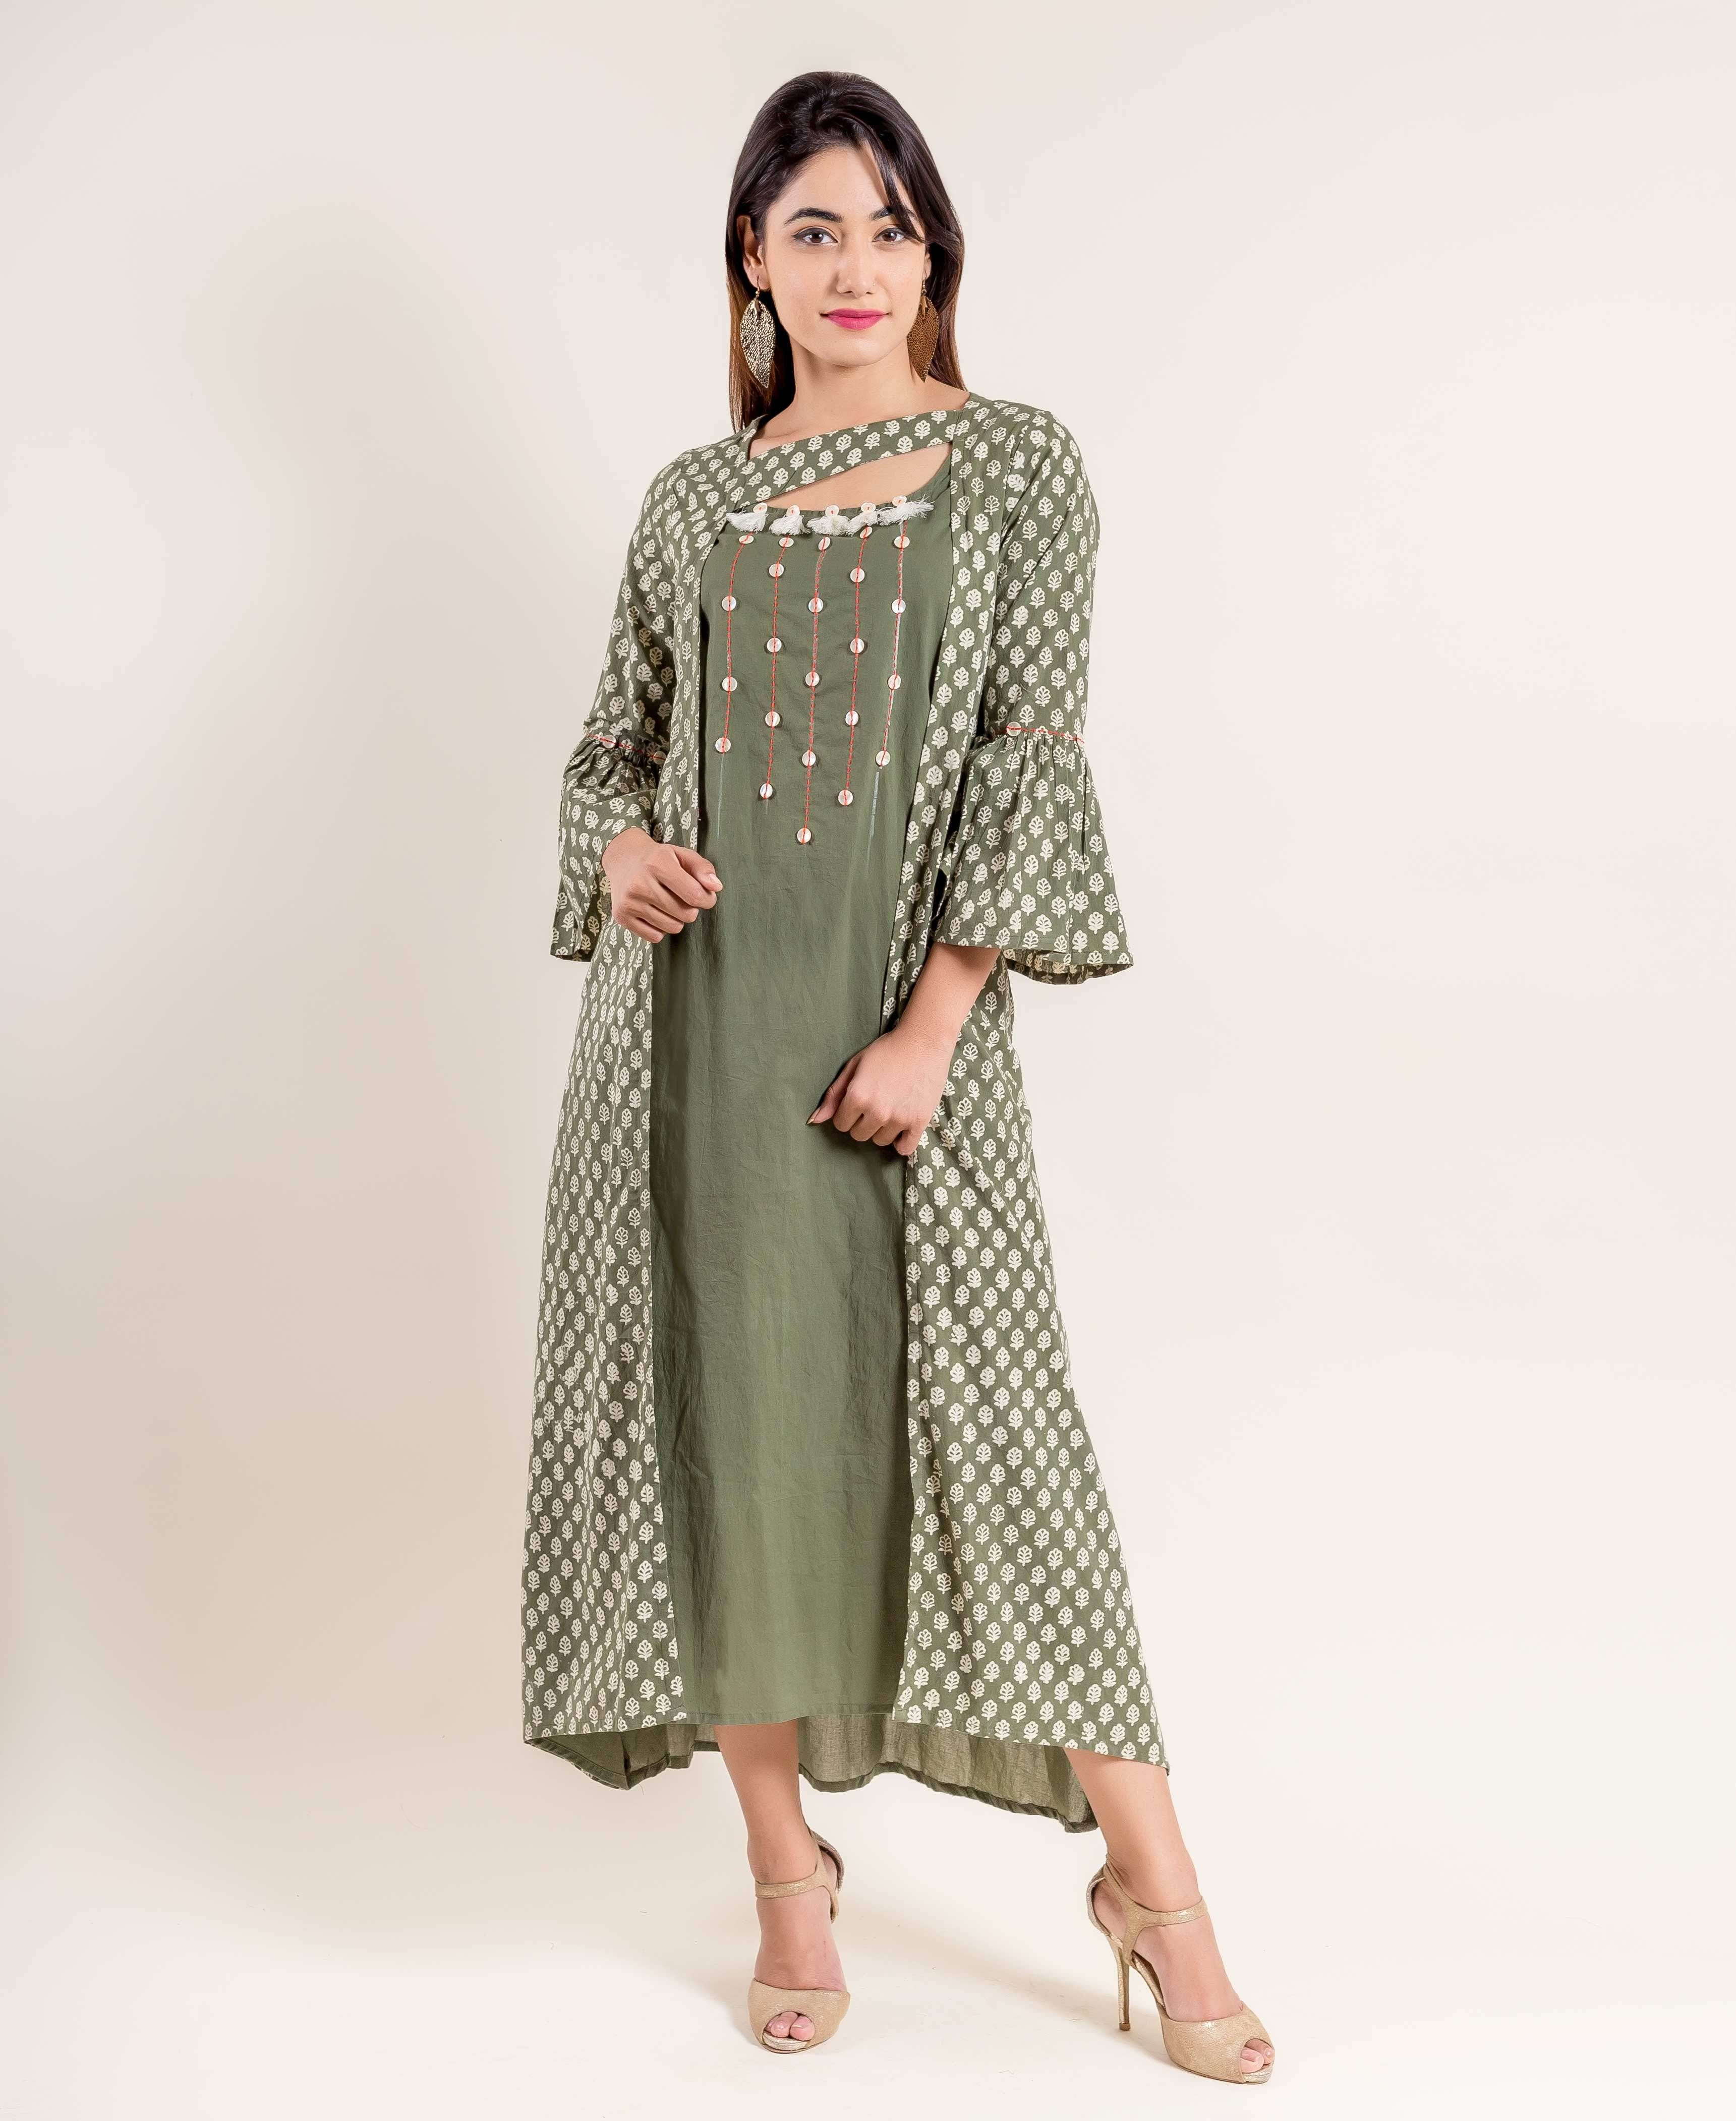 295542eb0f9e Create your own exclusive and fashionable high class dressing with this  flawless seaweed green / white hand block print indo western dress.